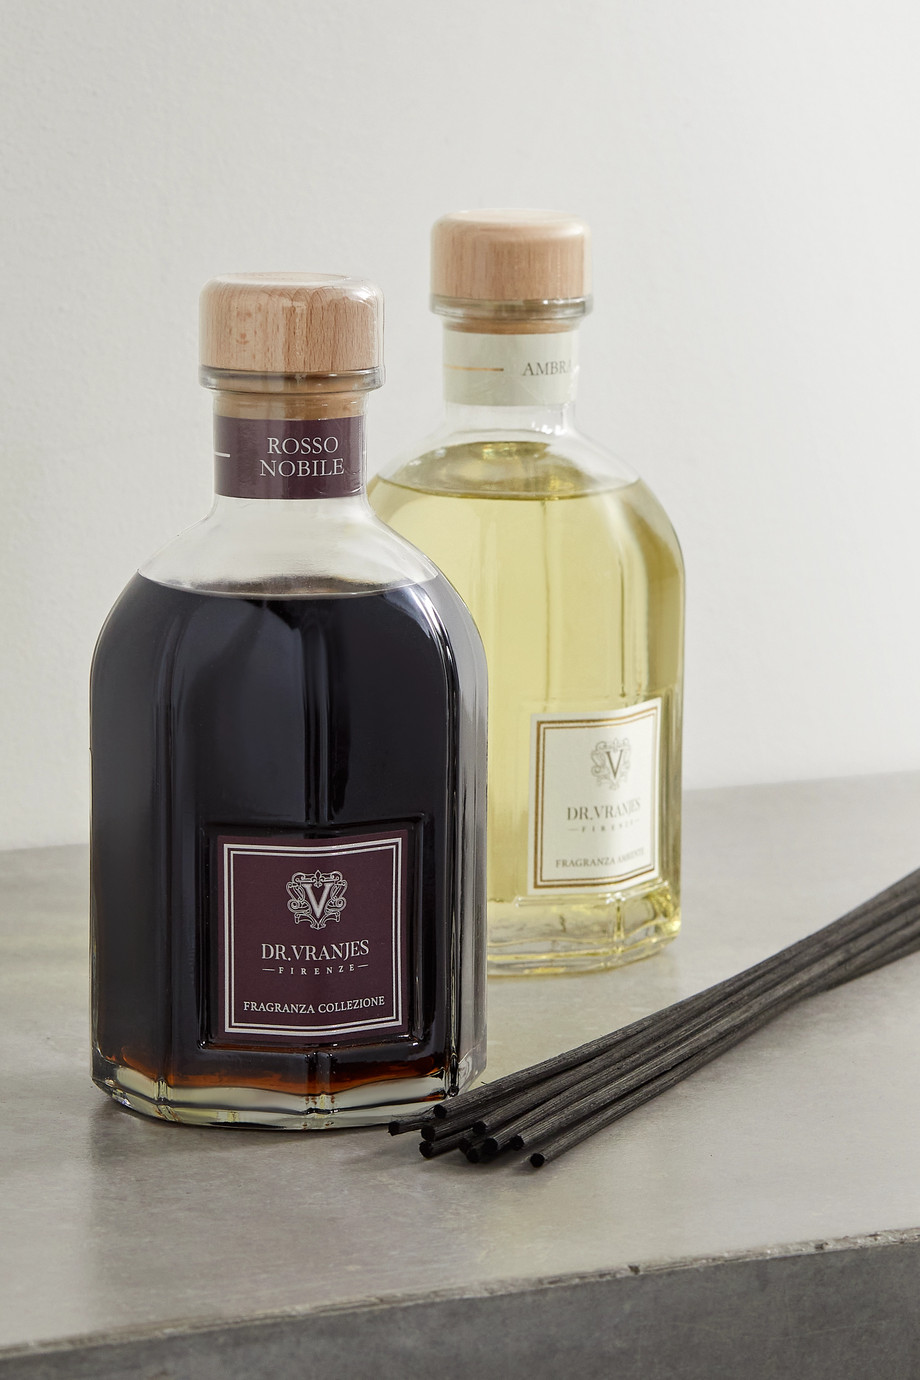 Dr. Vranjes Firenze Reed diffuser - Rosso Nobile, 500ml